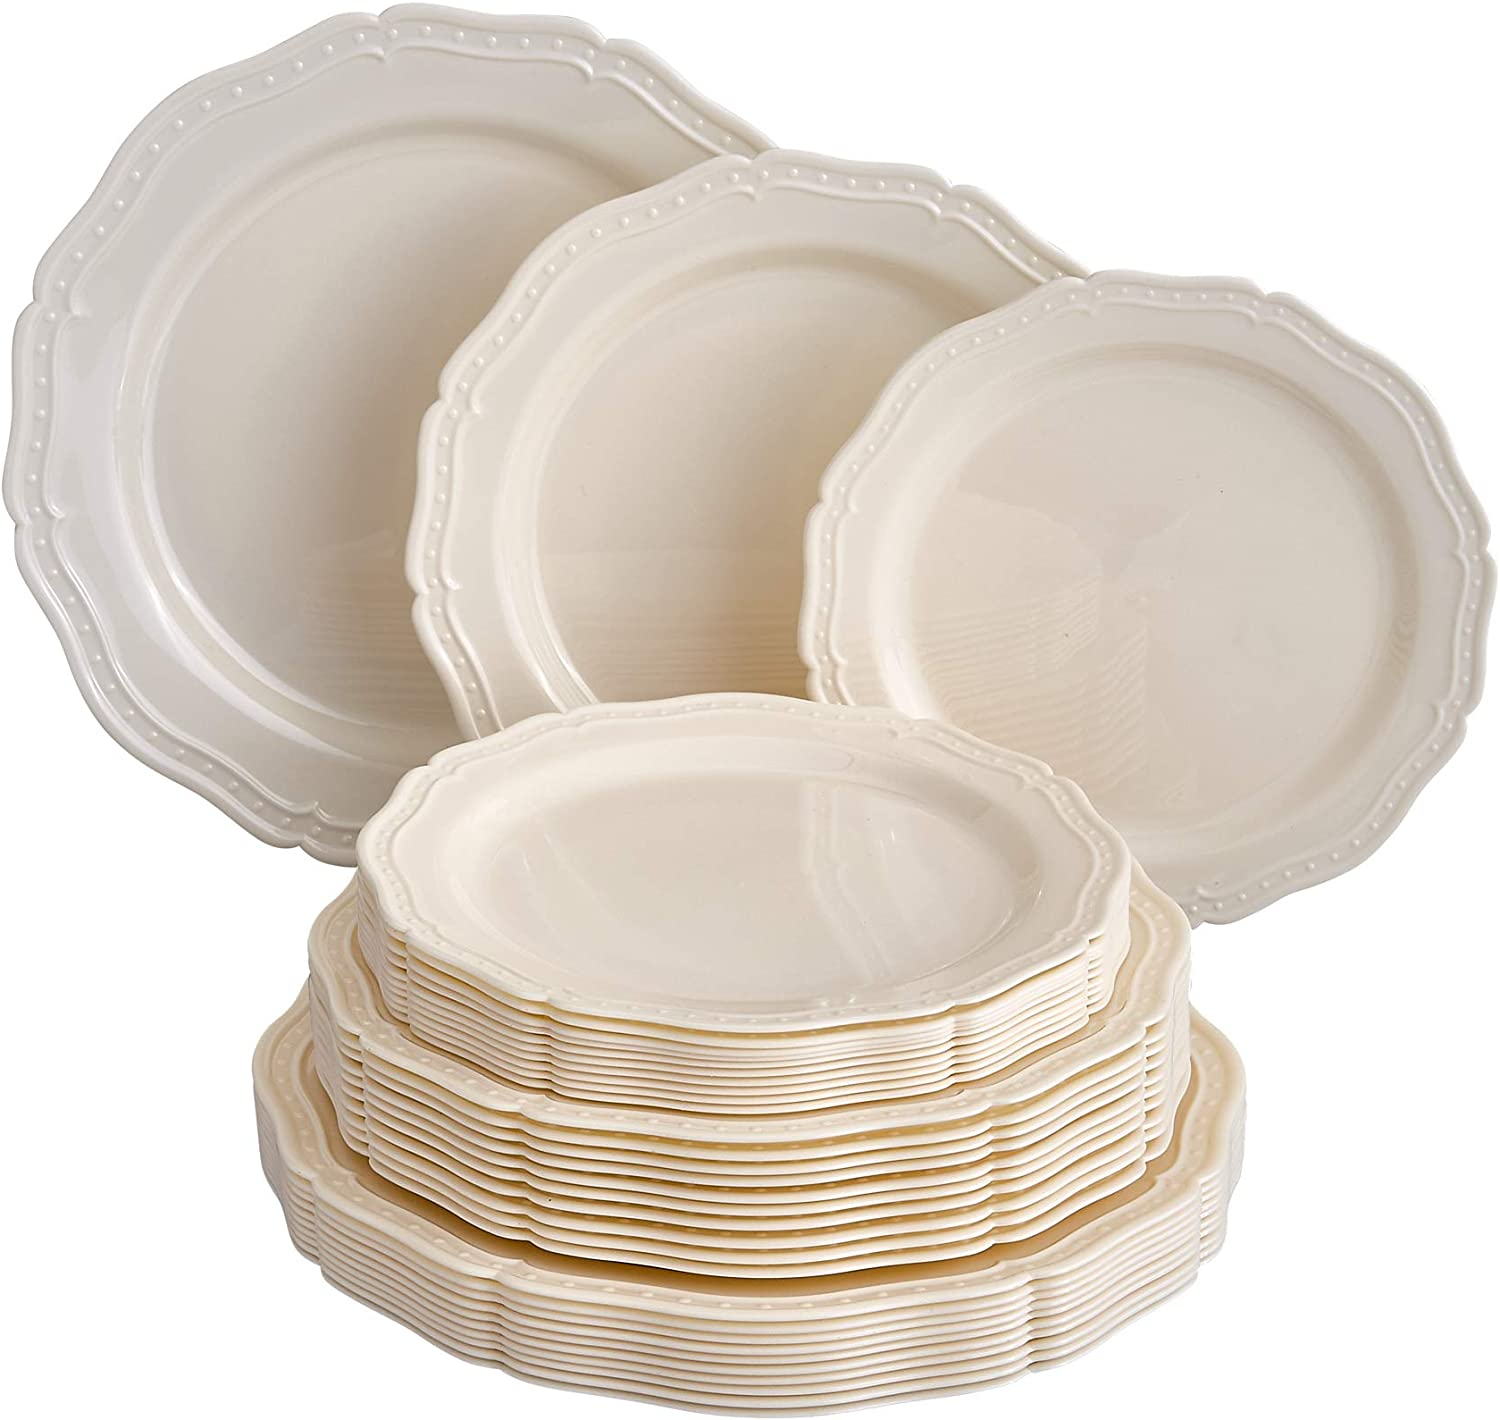 30 PC PLASTIC PLATE SET Disposable Party C Direct Same day shipping sale of manufacturer Plates French for